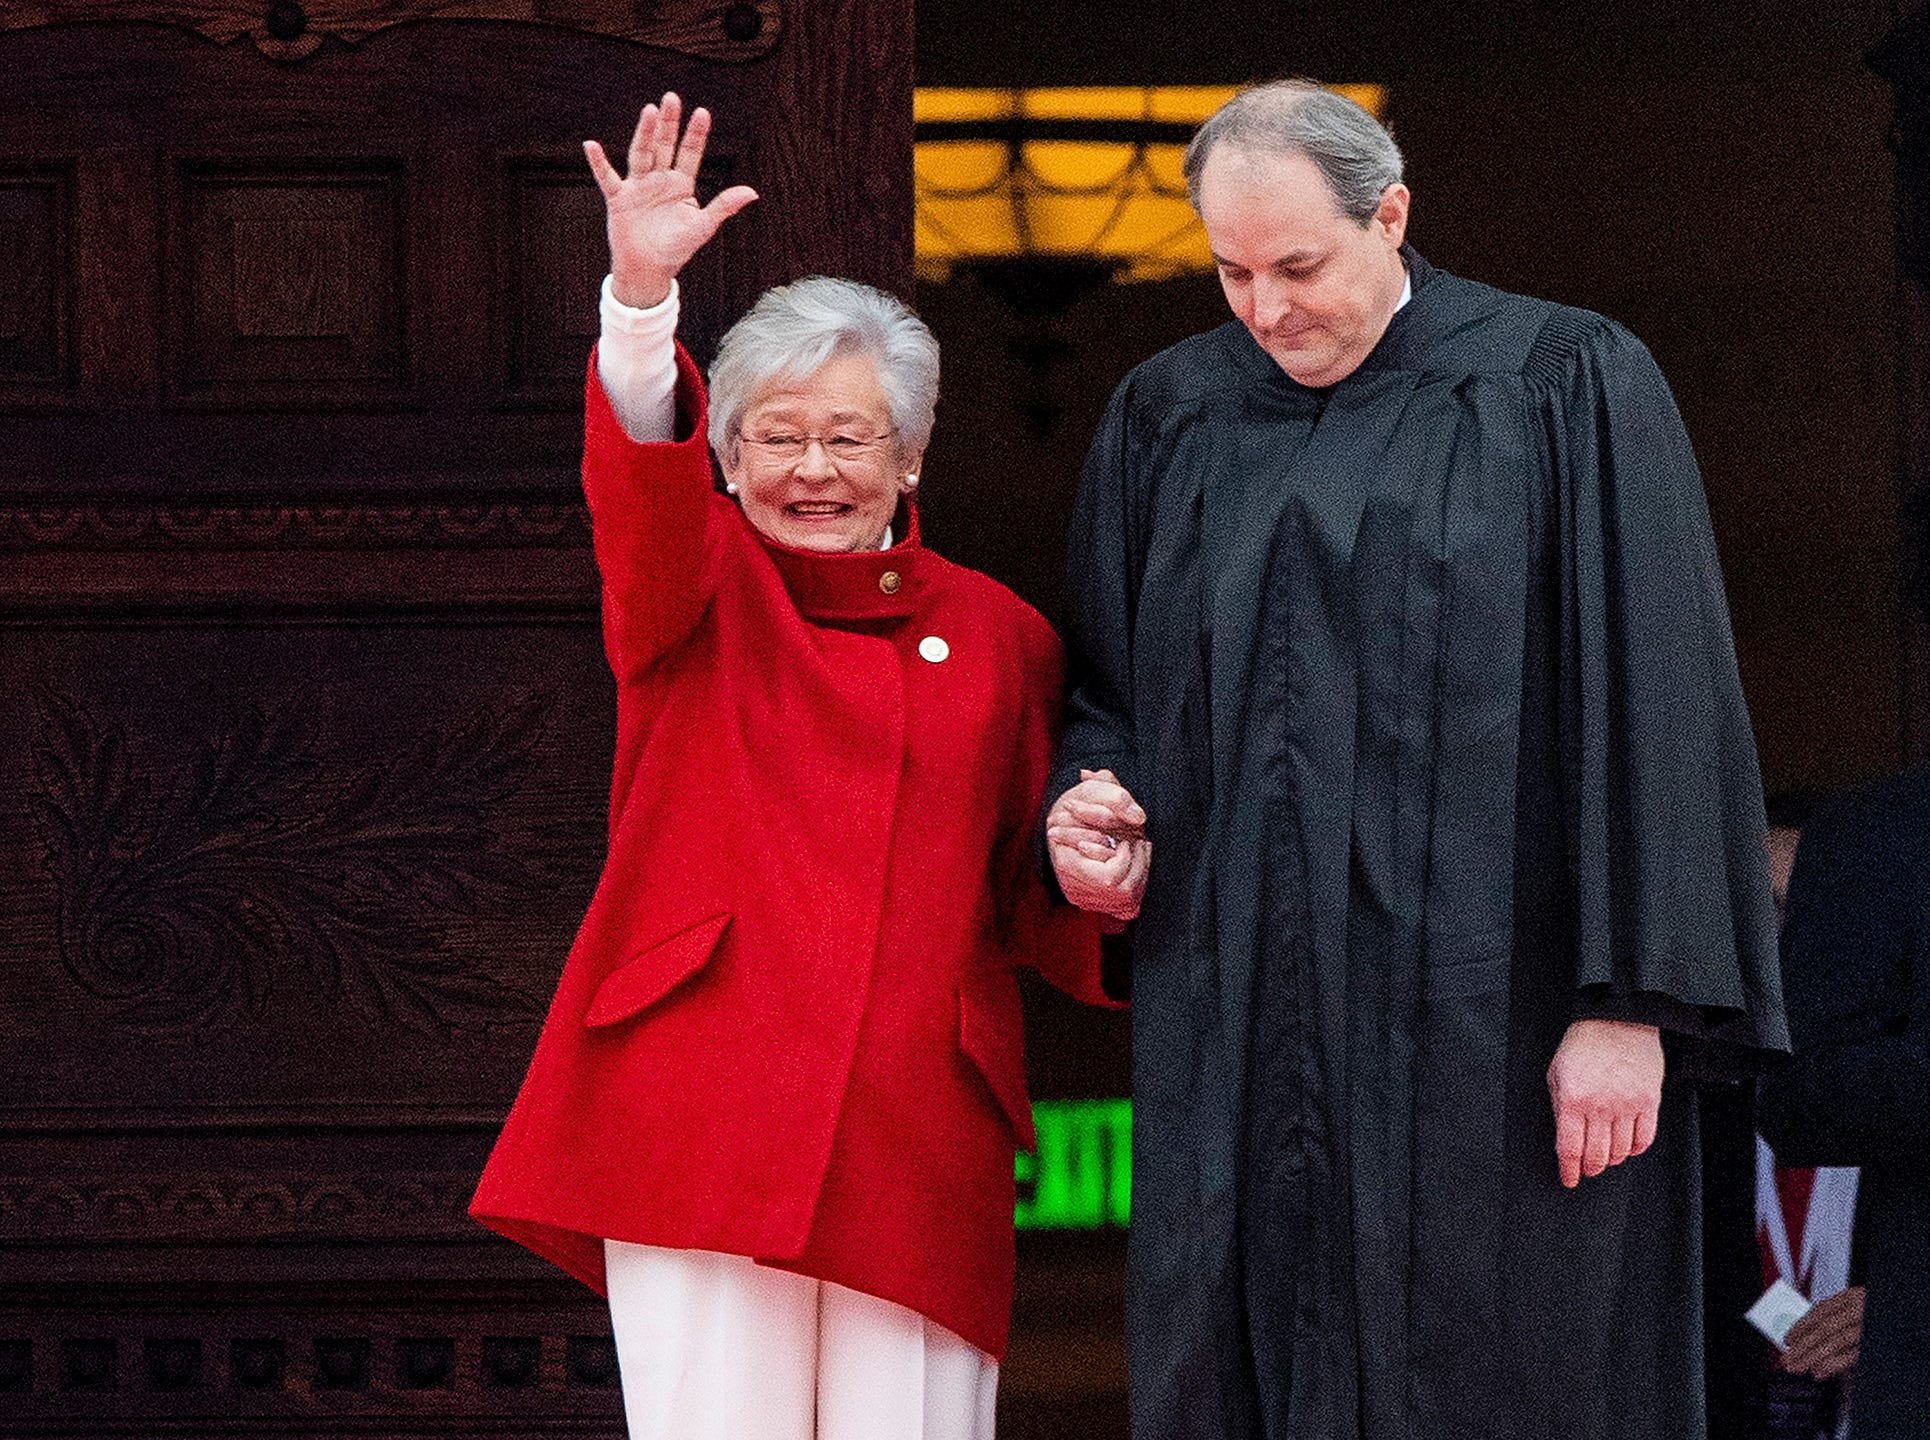 Governor Kay Ivey is escorted by Justice Will Sellers at her Inauguration in Montgomery, Ala., on Monday January 14, 2019.